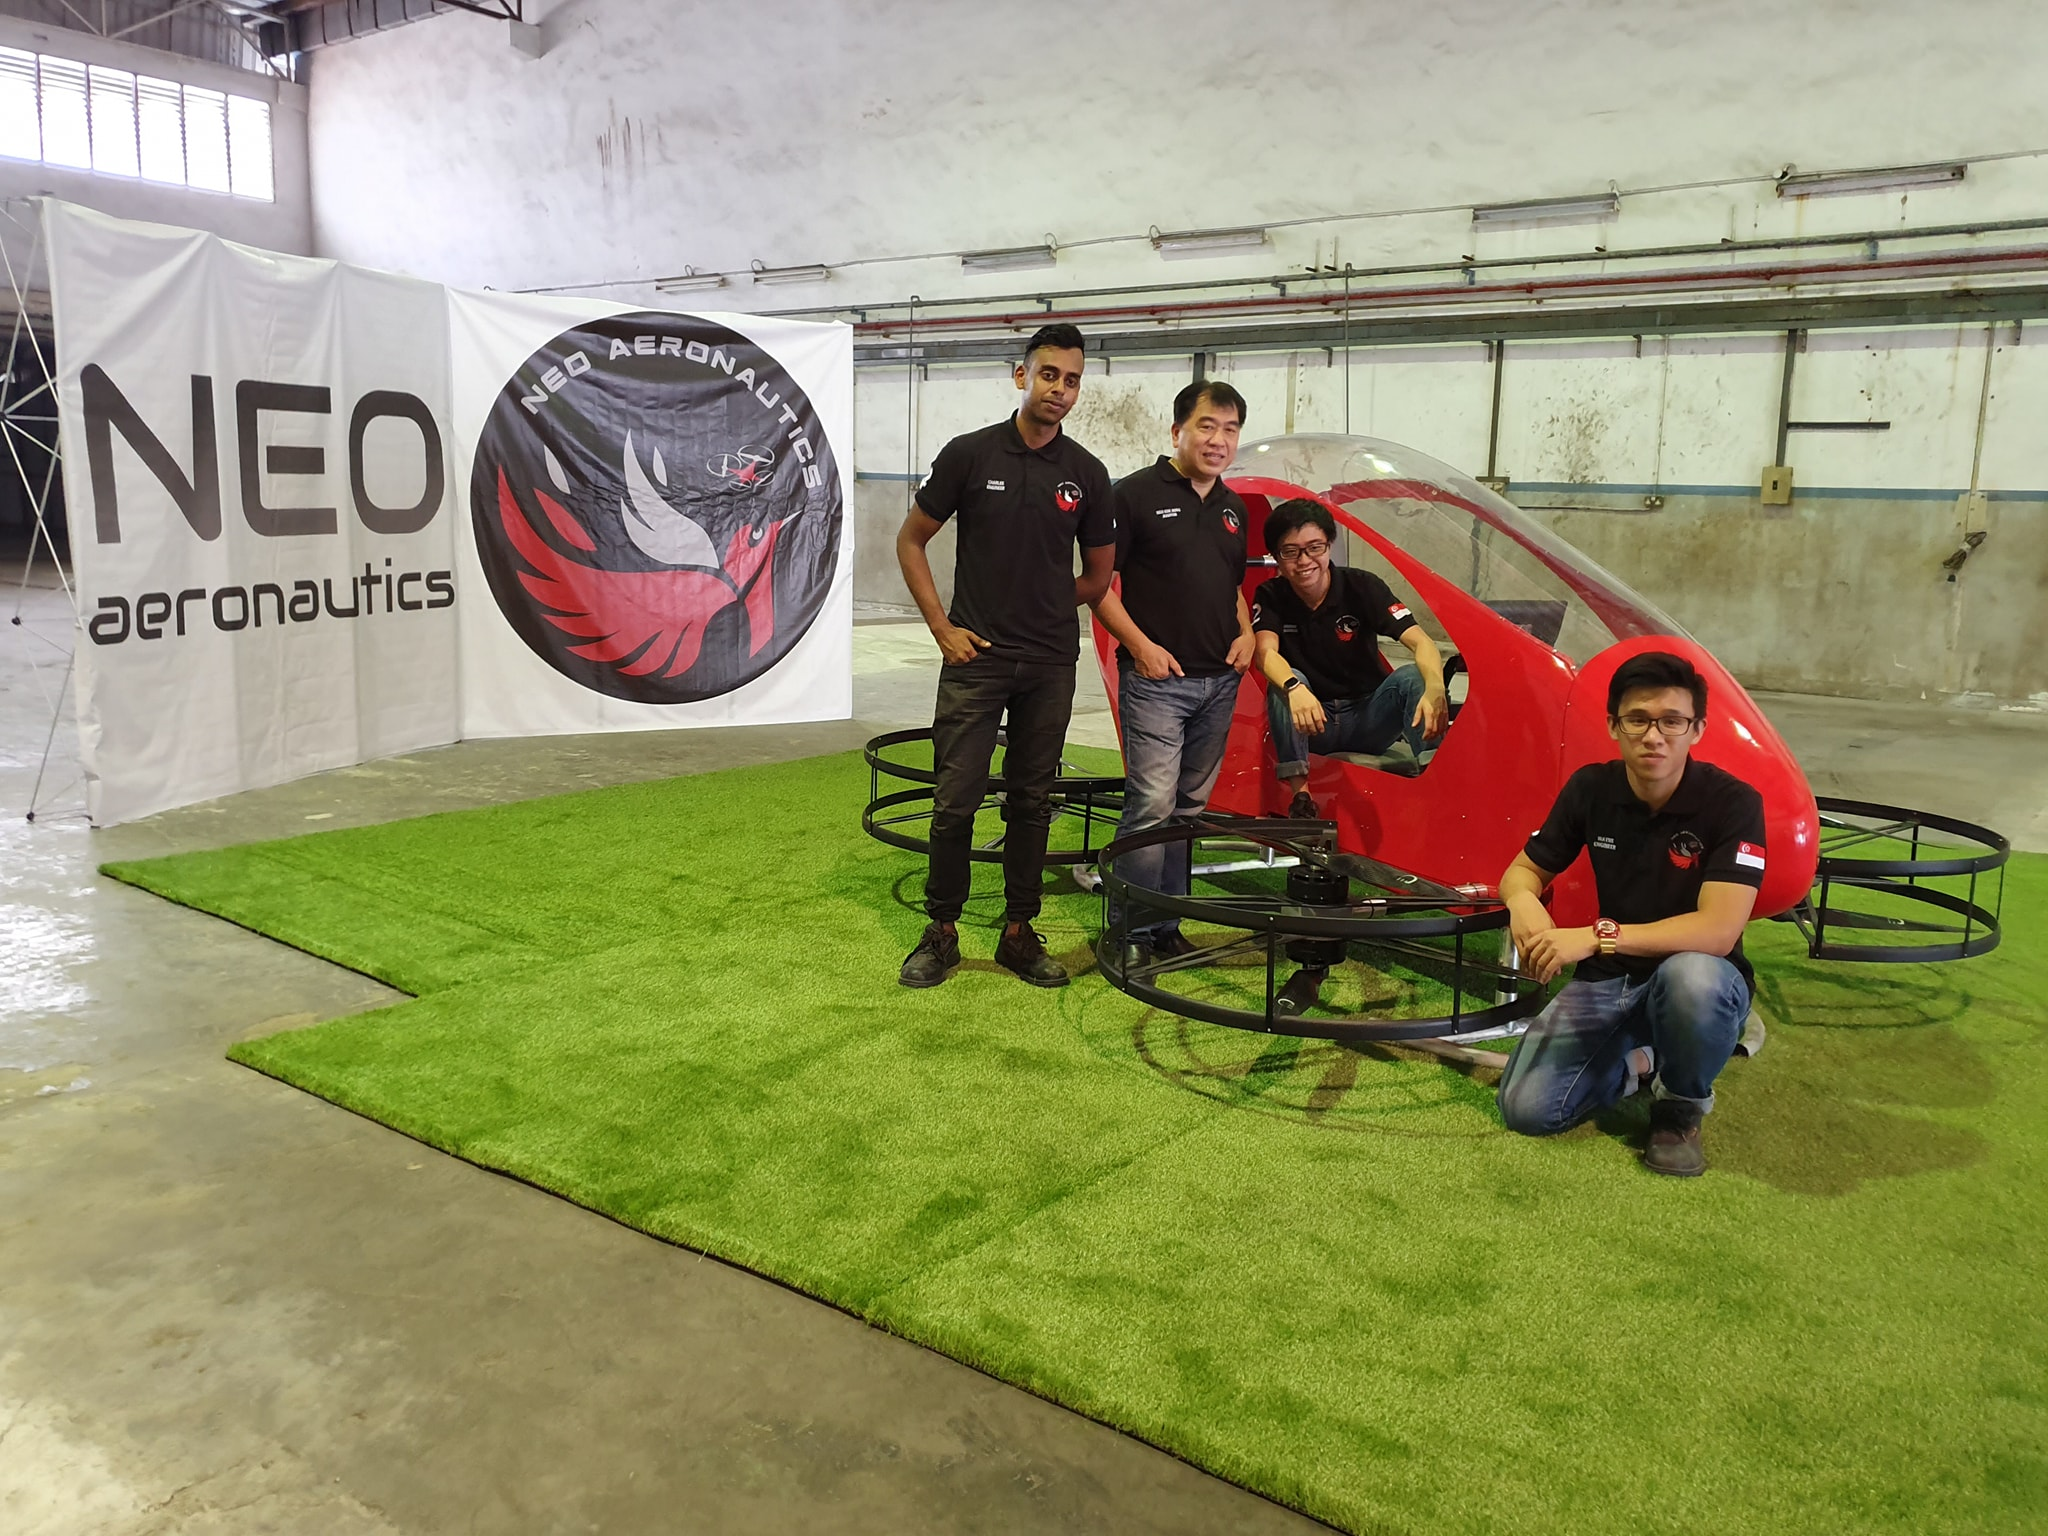 SG company launching single-seater flying vehicle